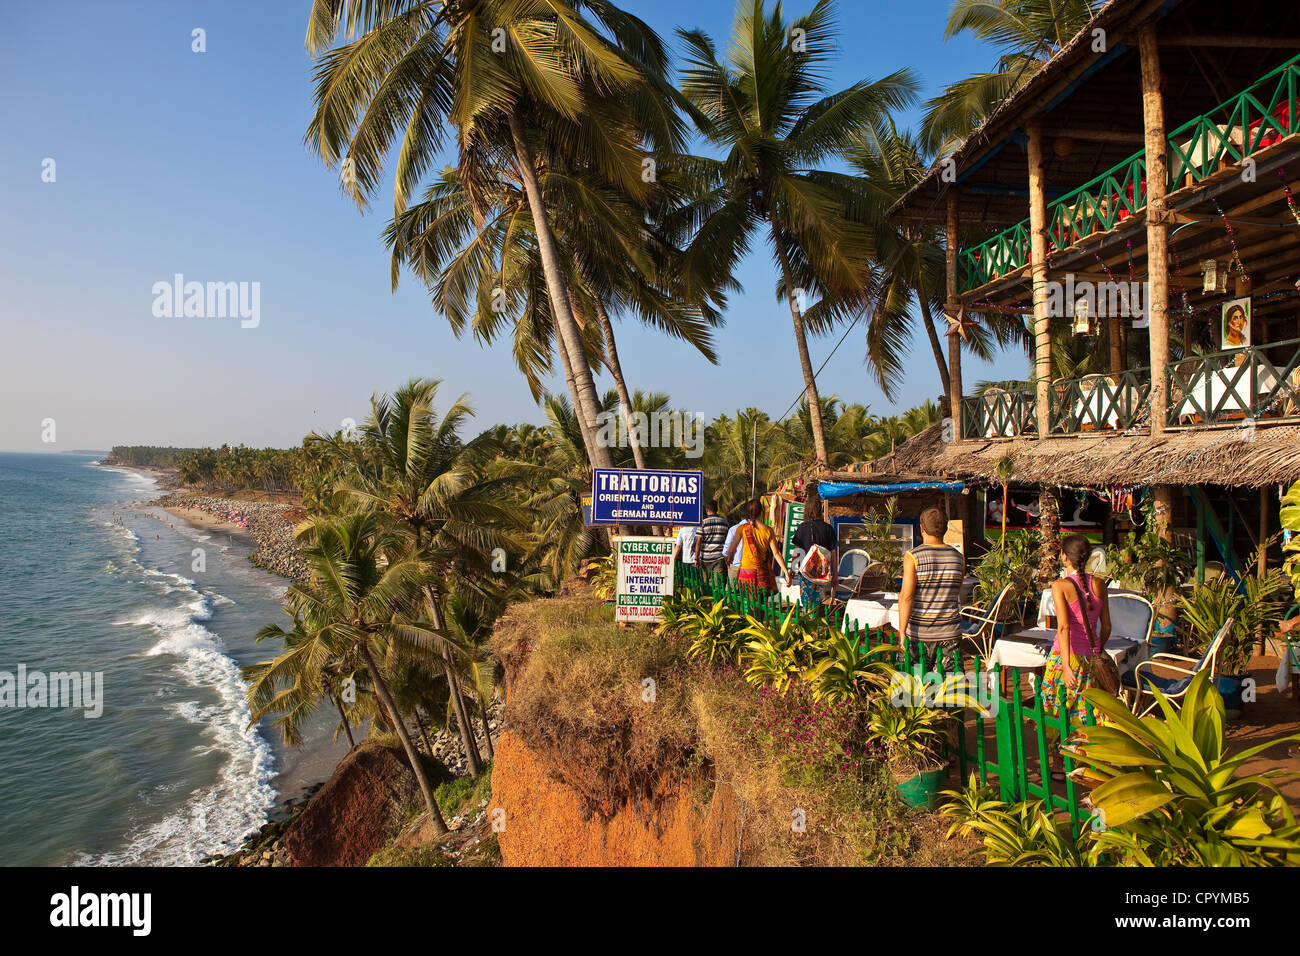 India, Kerala State, Varkala, seaside resort at the top of a cliff - Stock Image